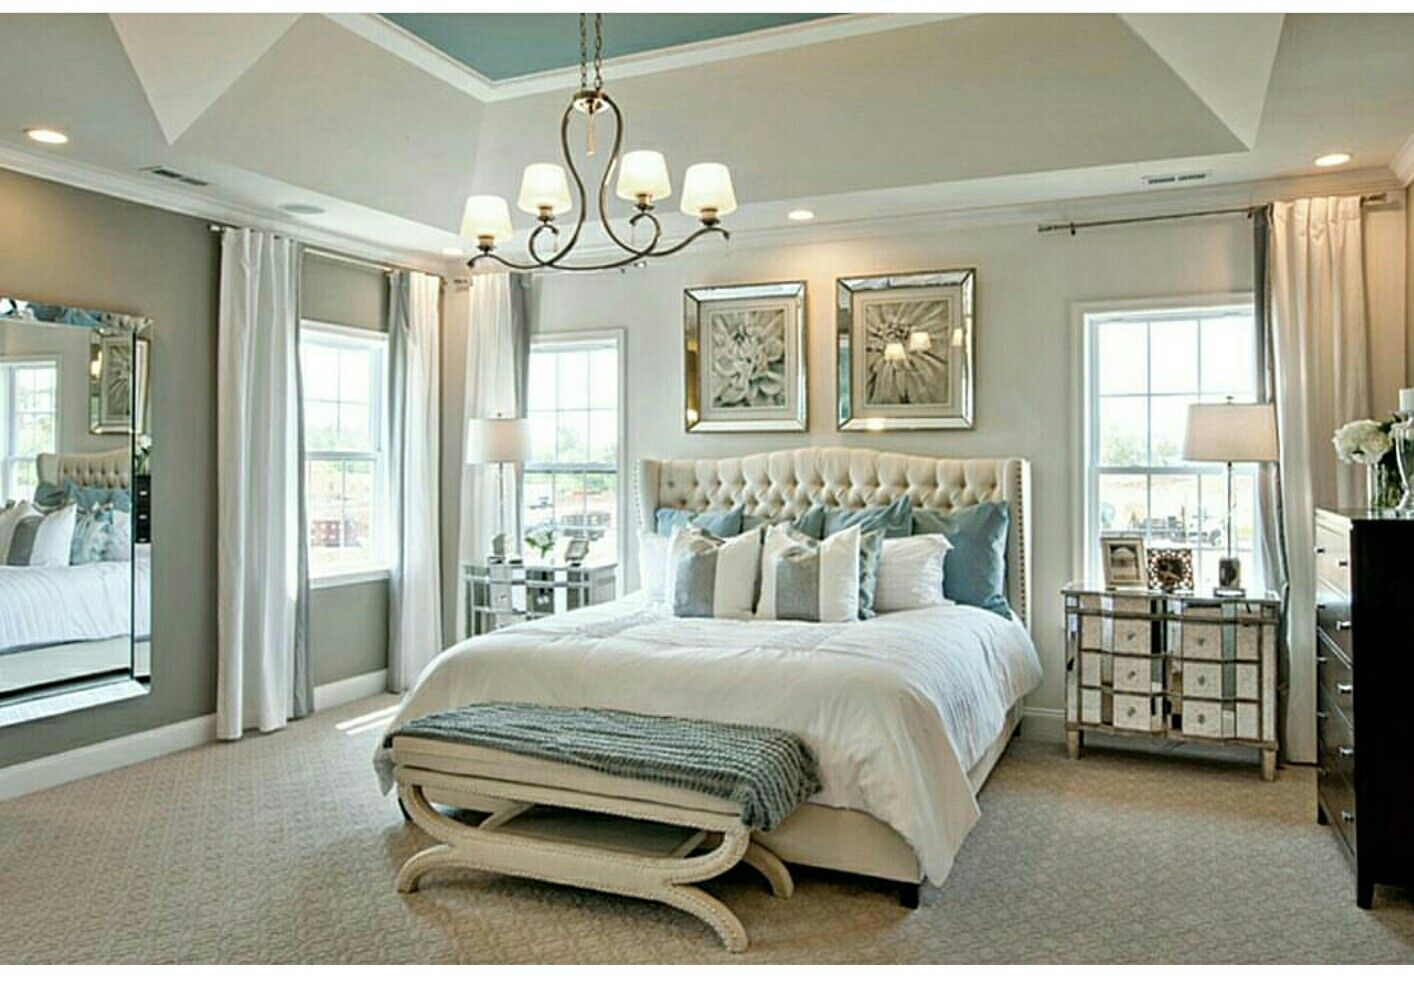 Master bedroom grey  Pin by Karlin Schultz on Home ideas  Pinterest  Bedrooms Master